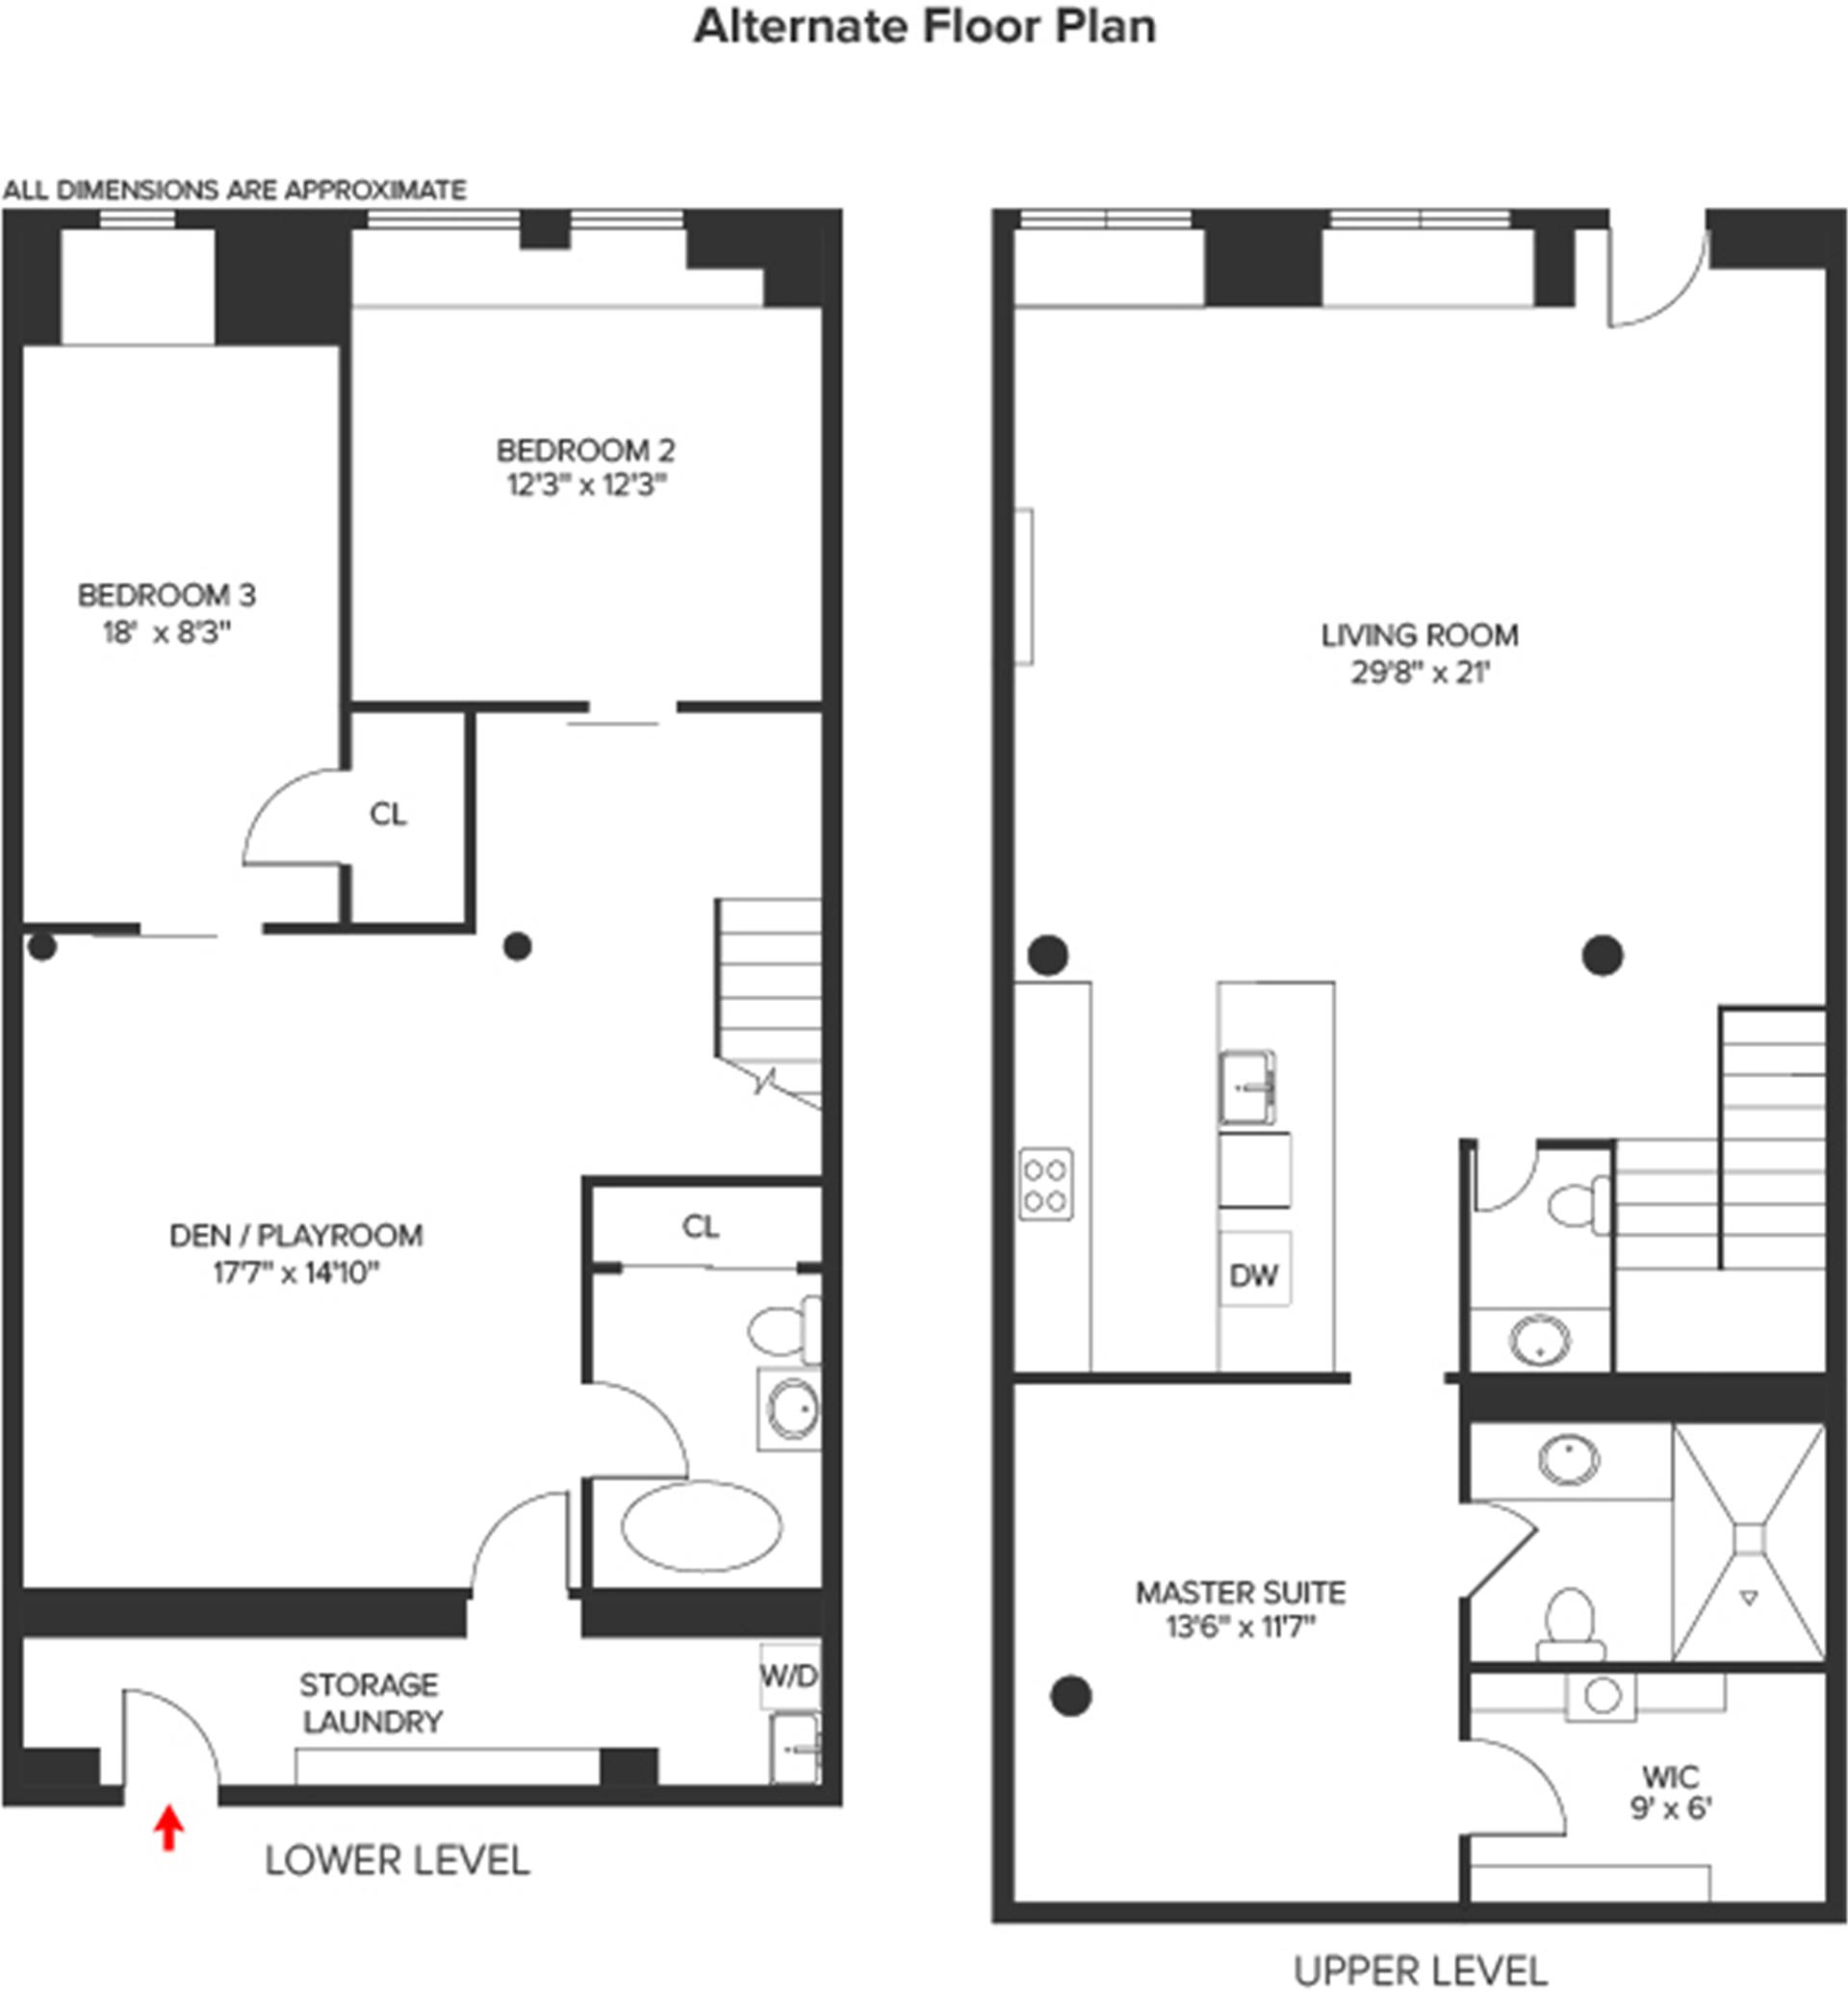 Floor plan of 308 Elizabeth St - NoHo, New York